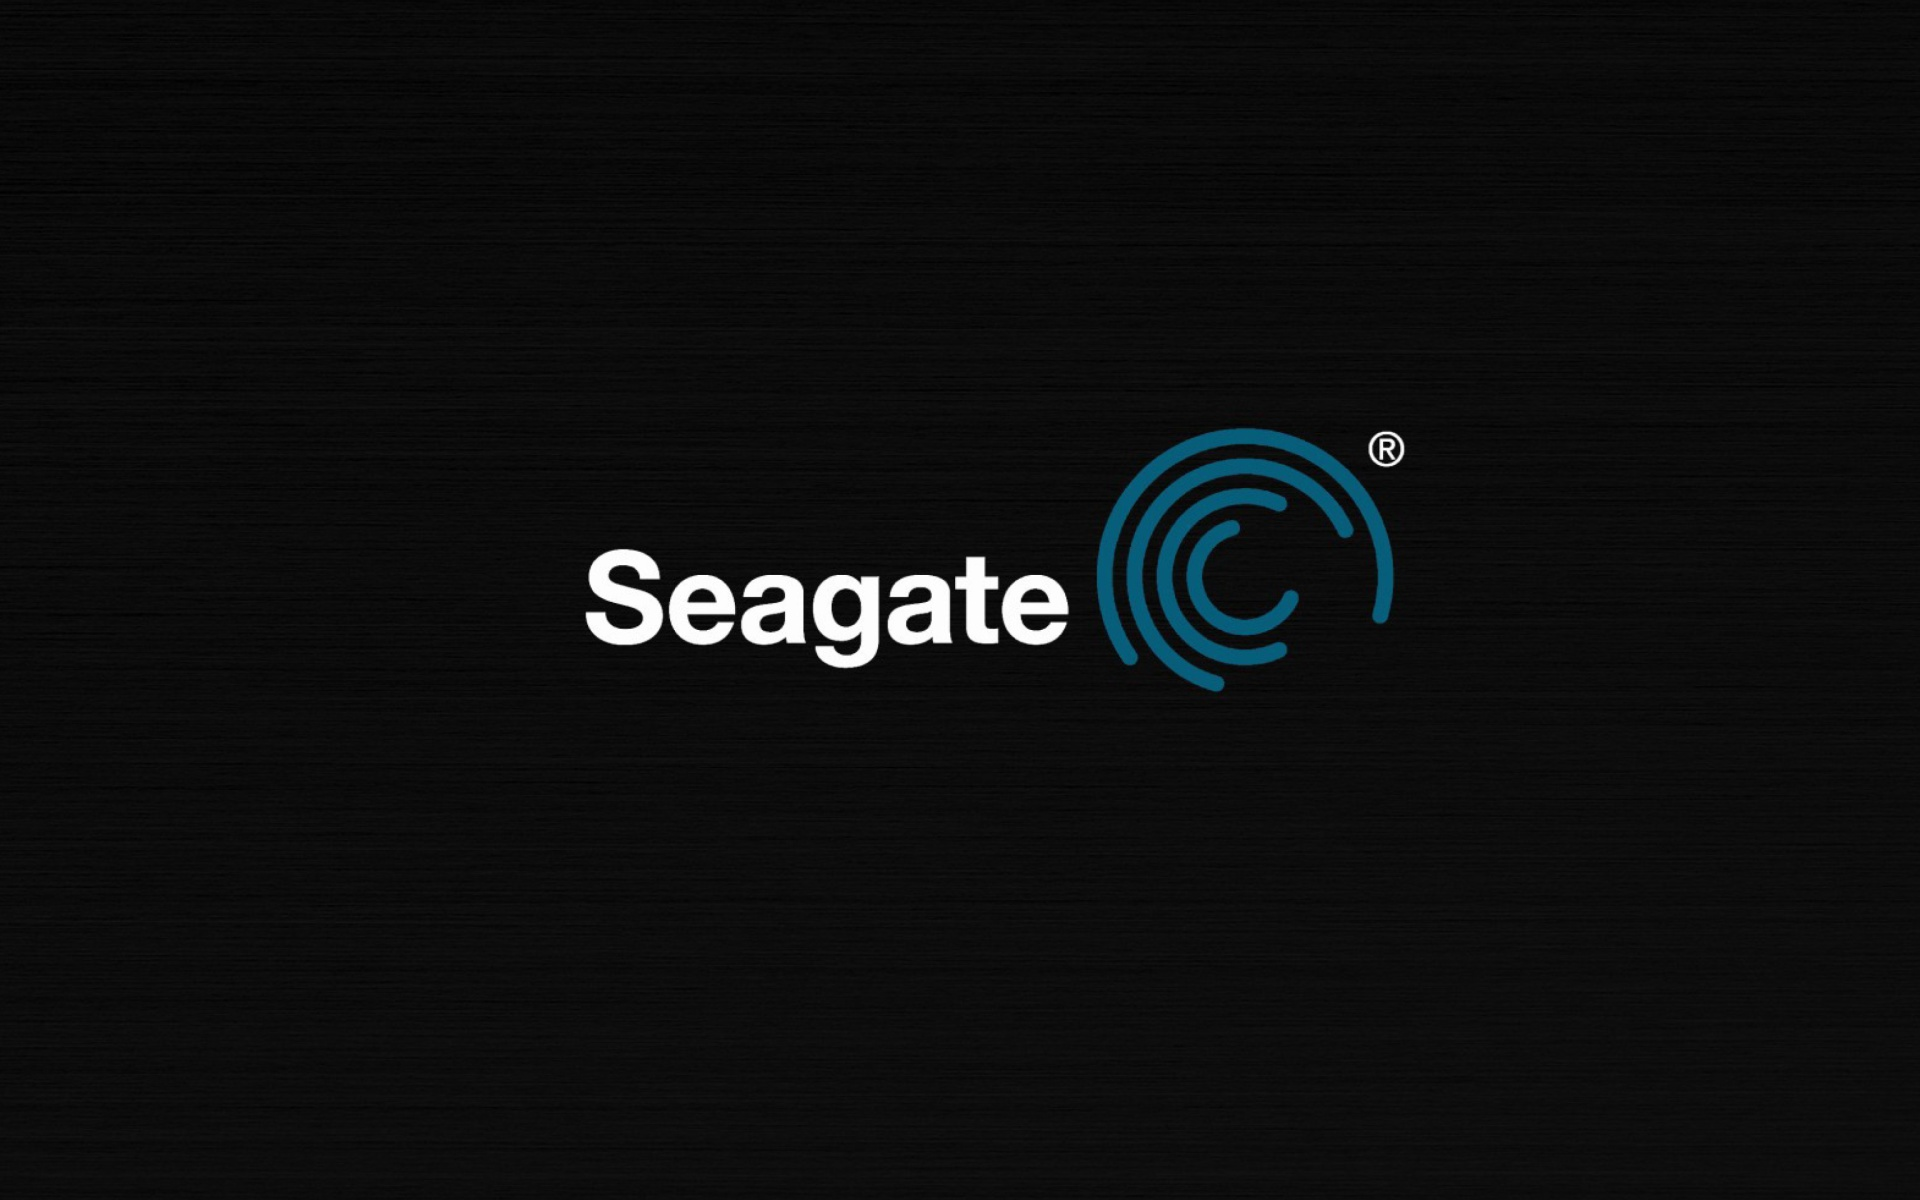 seagate logo wallpaper for widescreen desktop pc 1920x1080